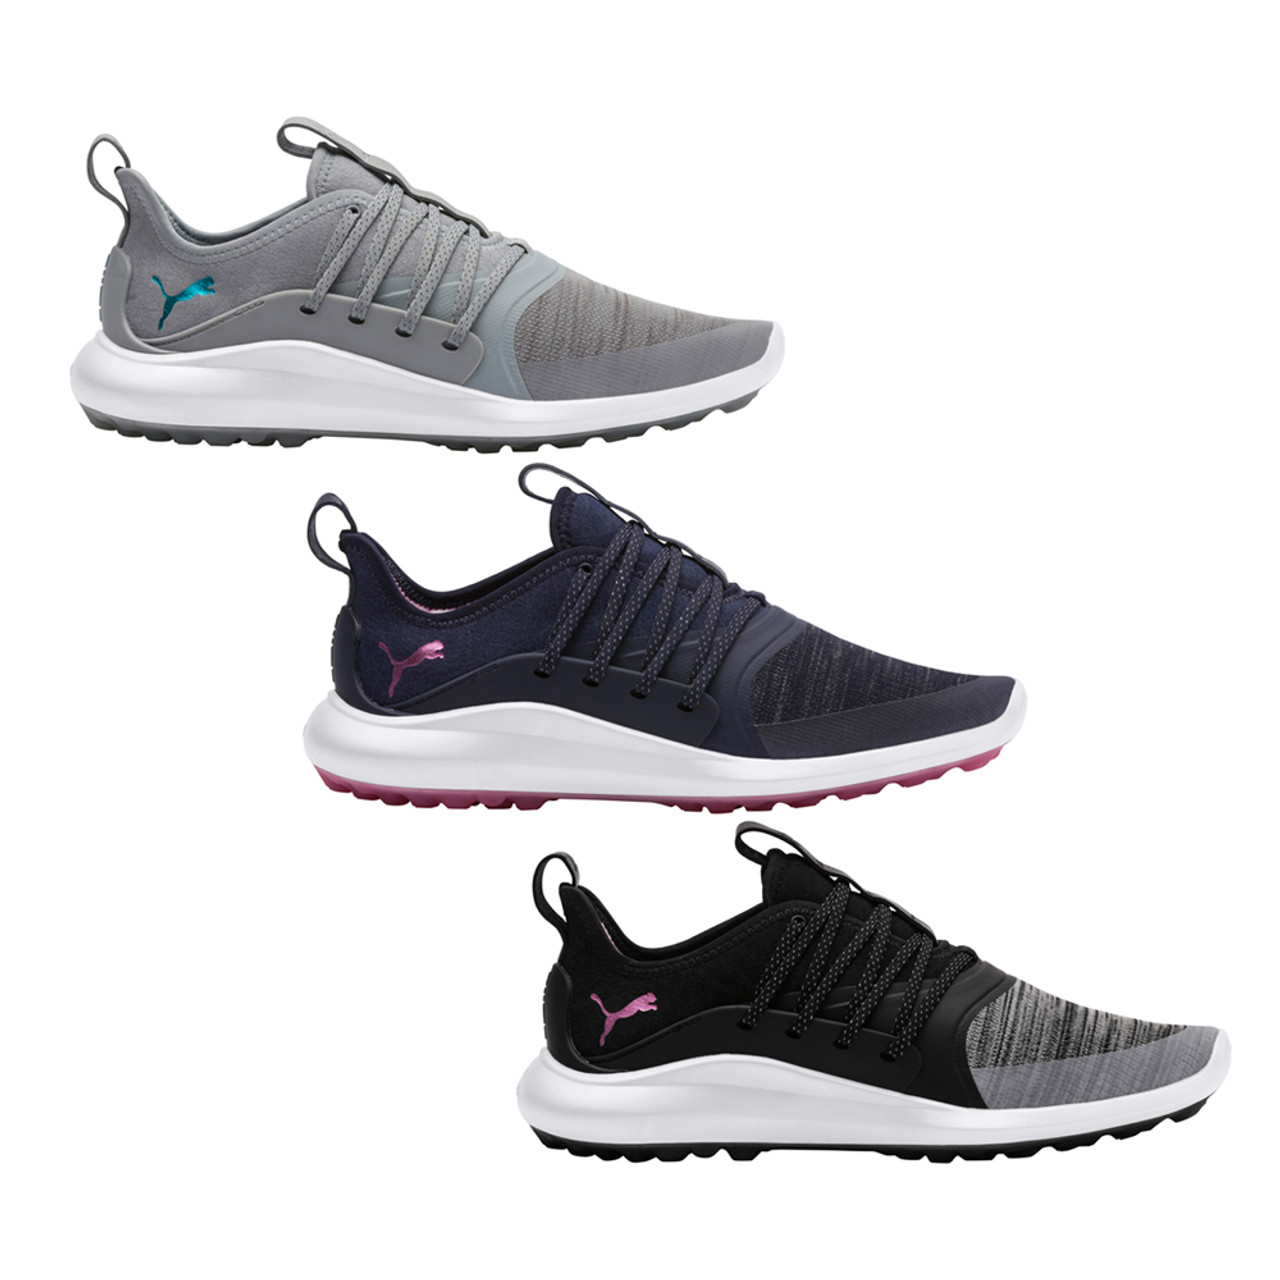 precio competitivo elegante en estilo entrega gratis PUMA Ignite NXT Solelace Spikeless Golf Shoes 2019 Women - Golfio